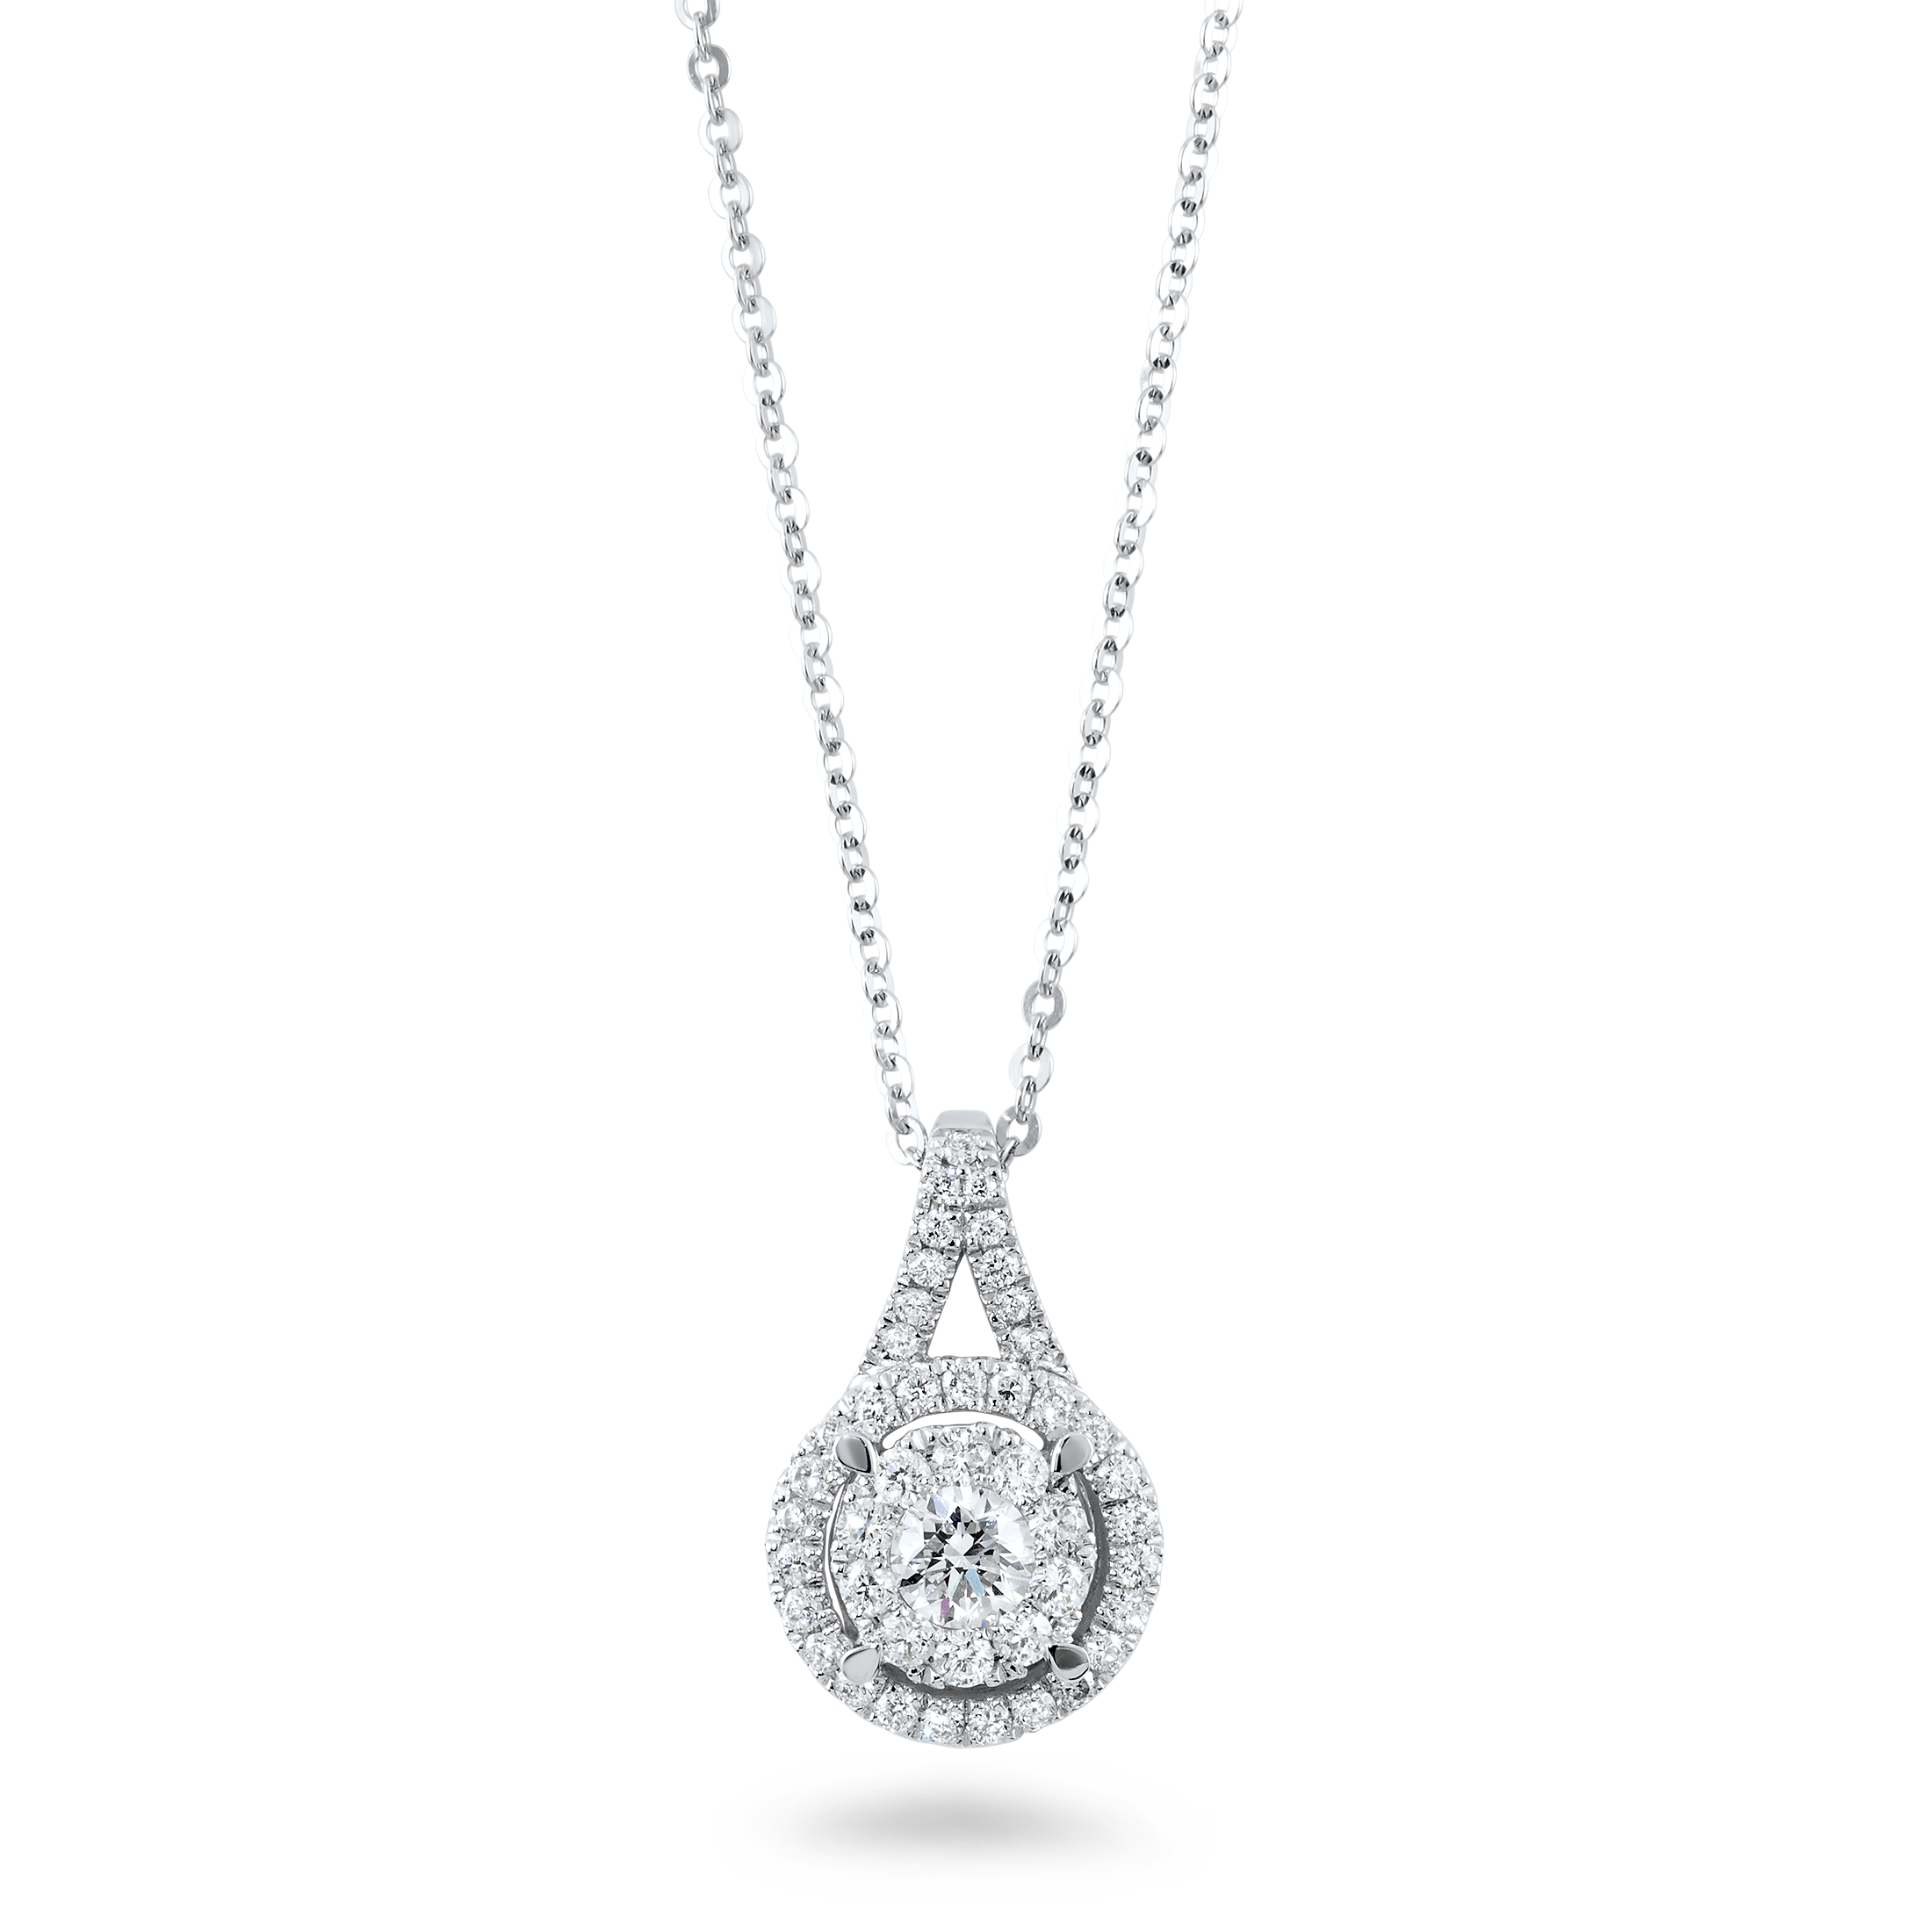 Diamond necklace png. Transparent images pluspng truly